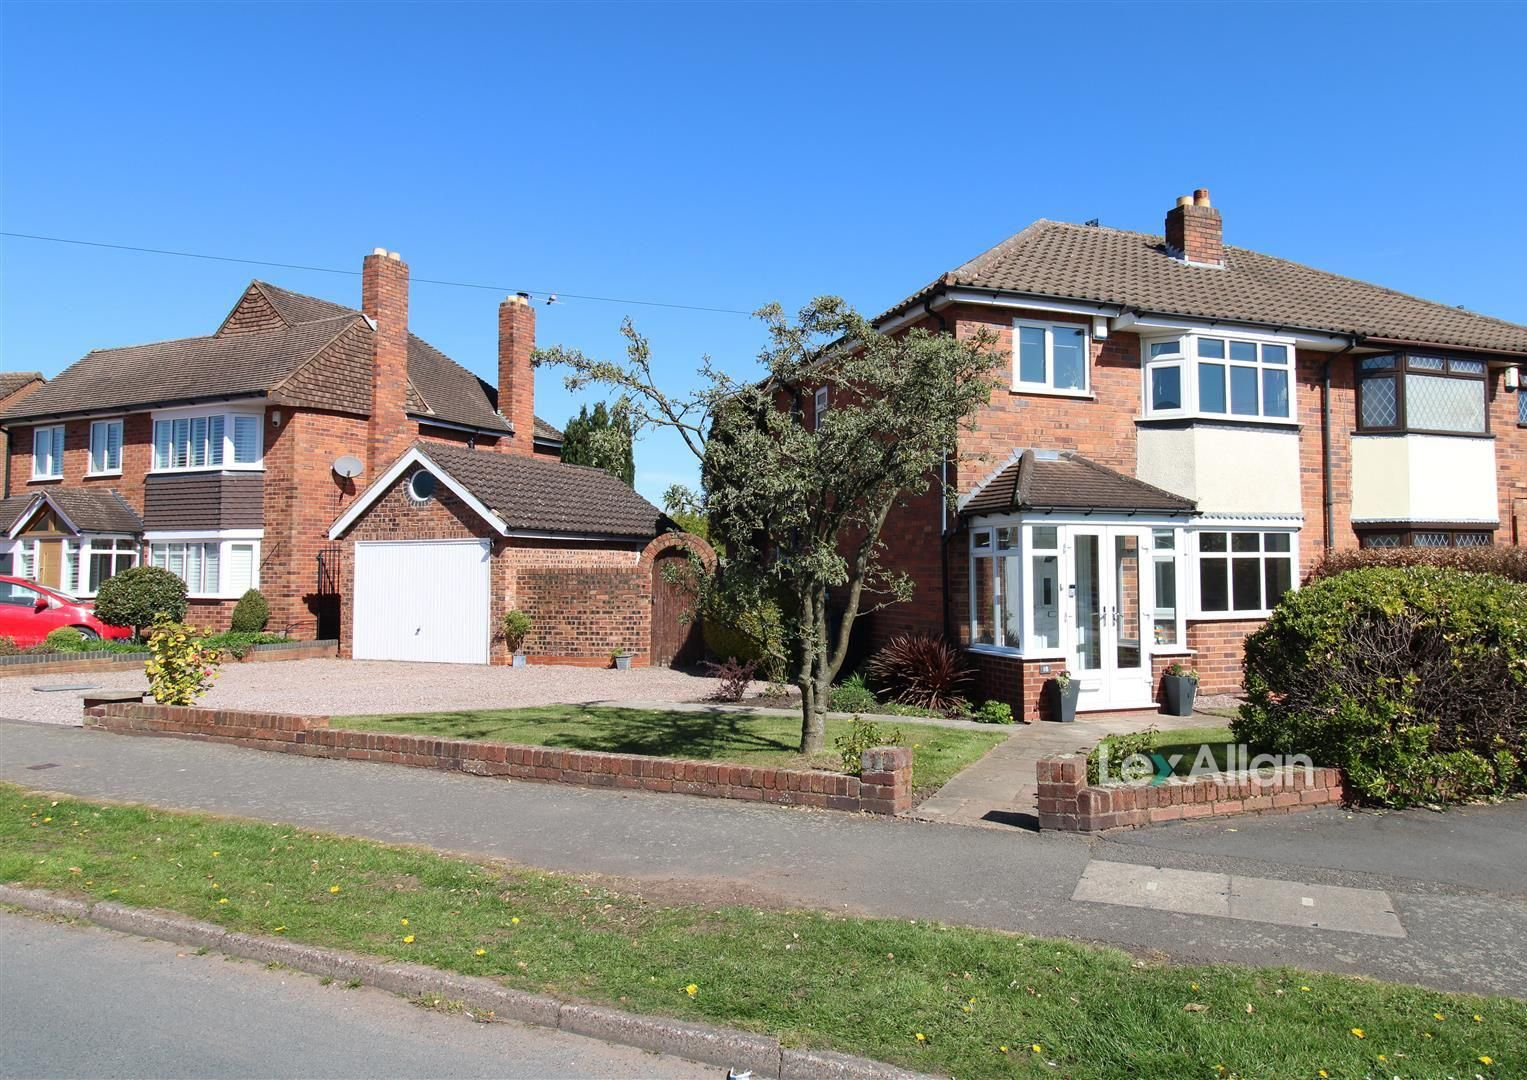 3 bed semi-detached for sale in Norton, DY8